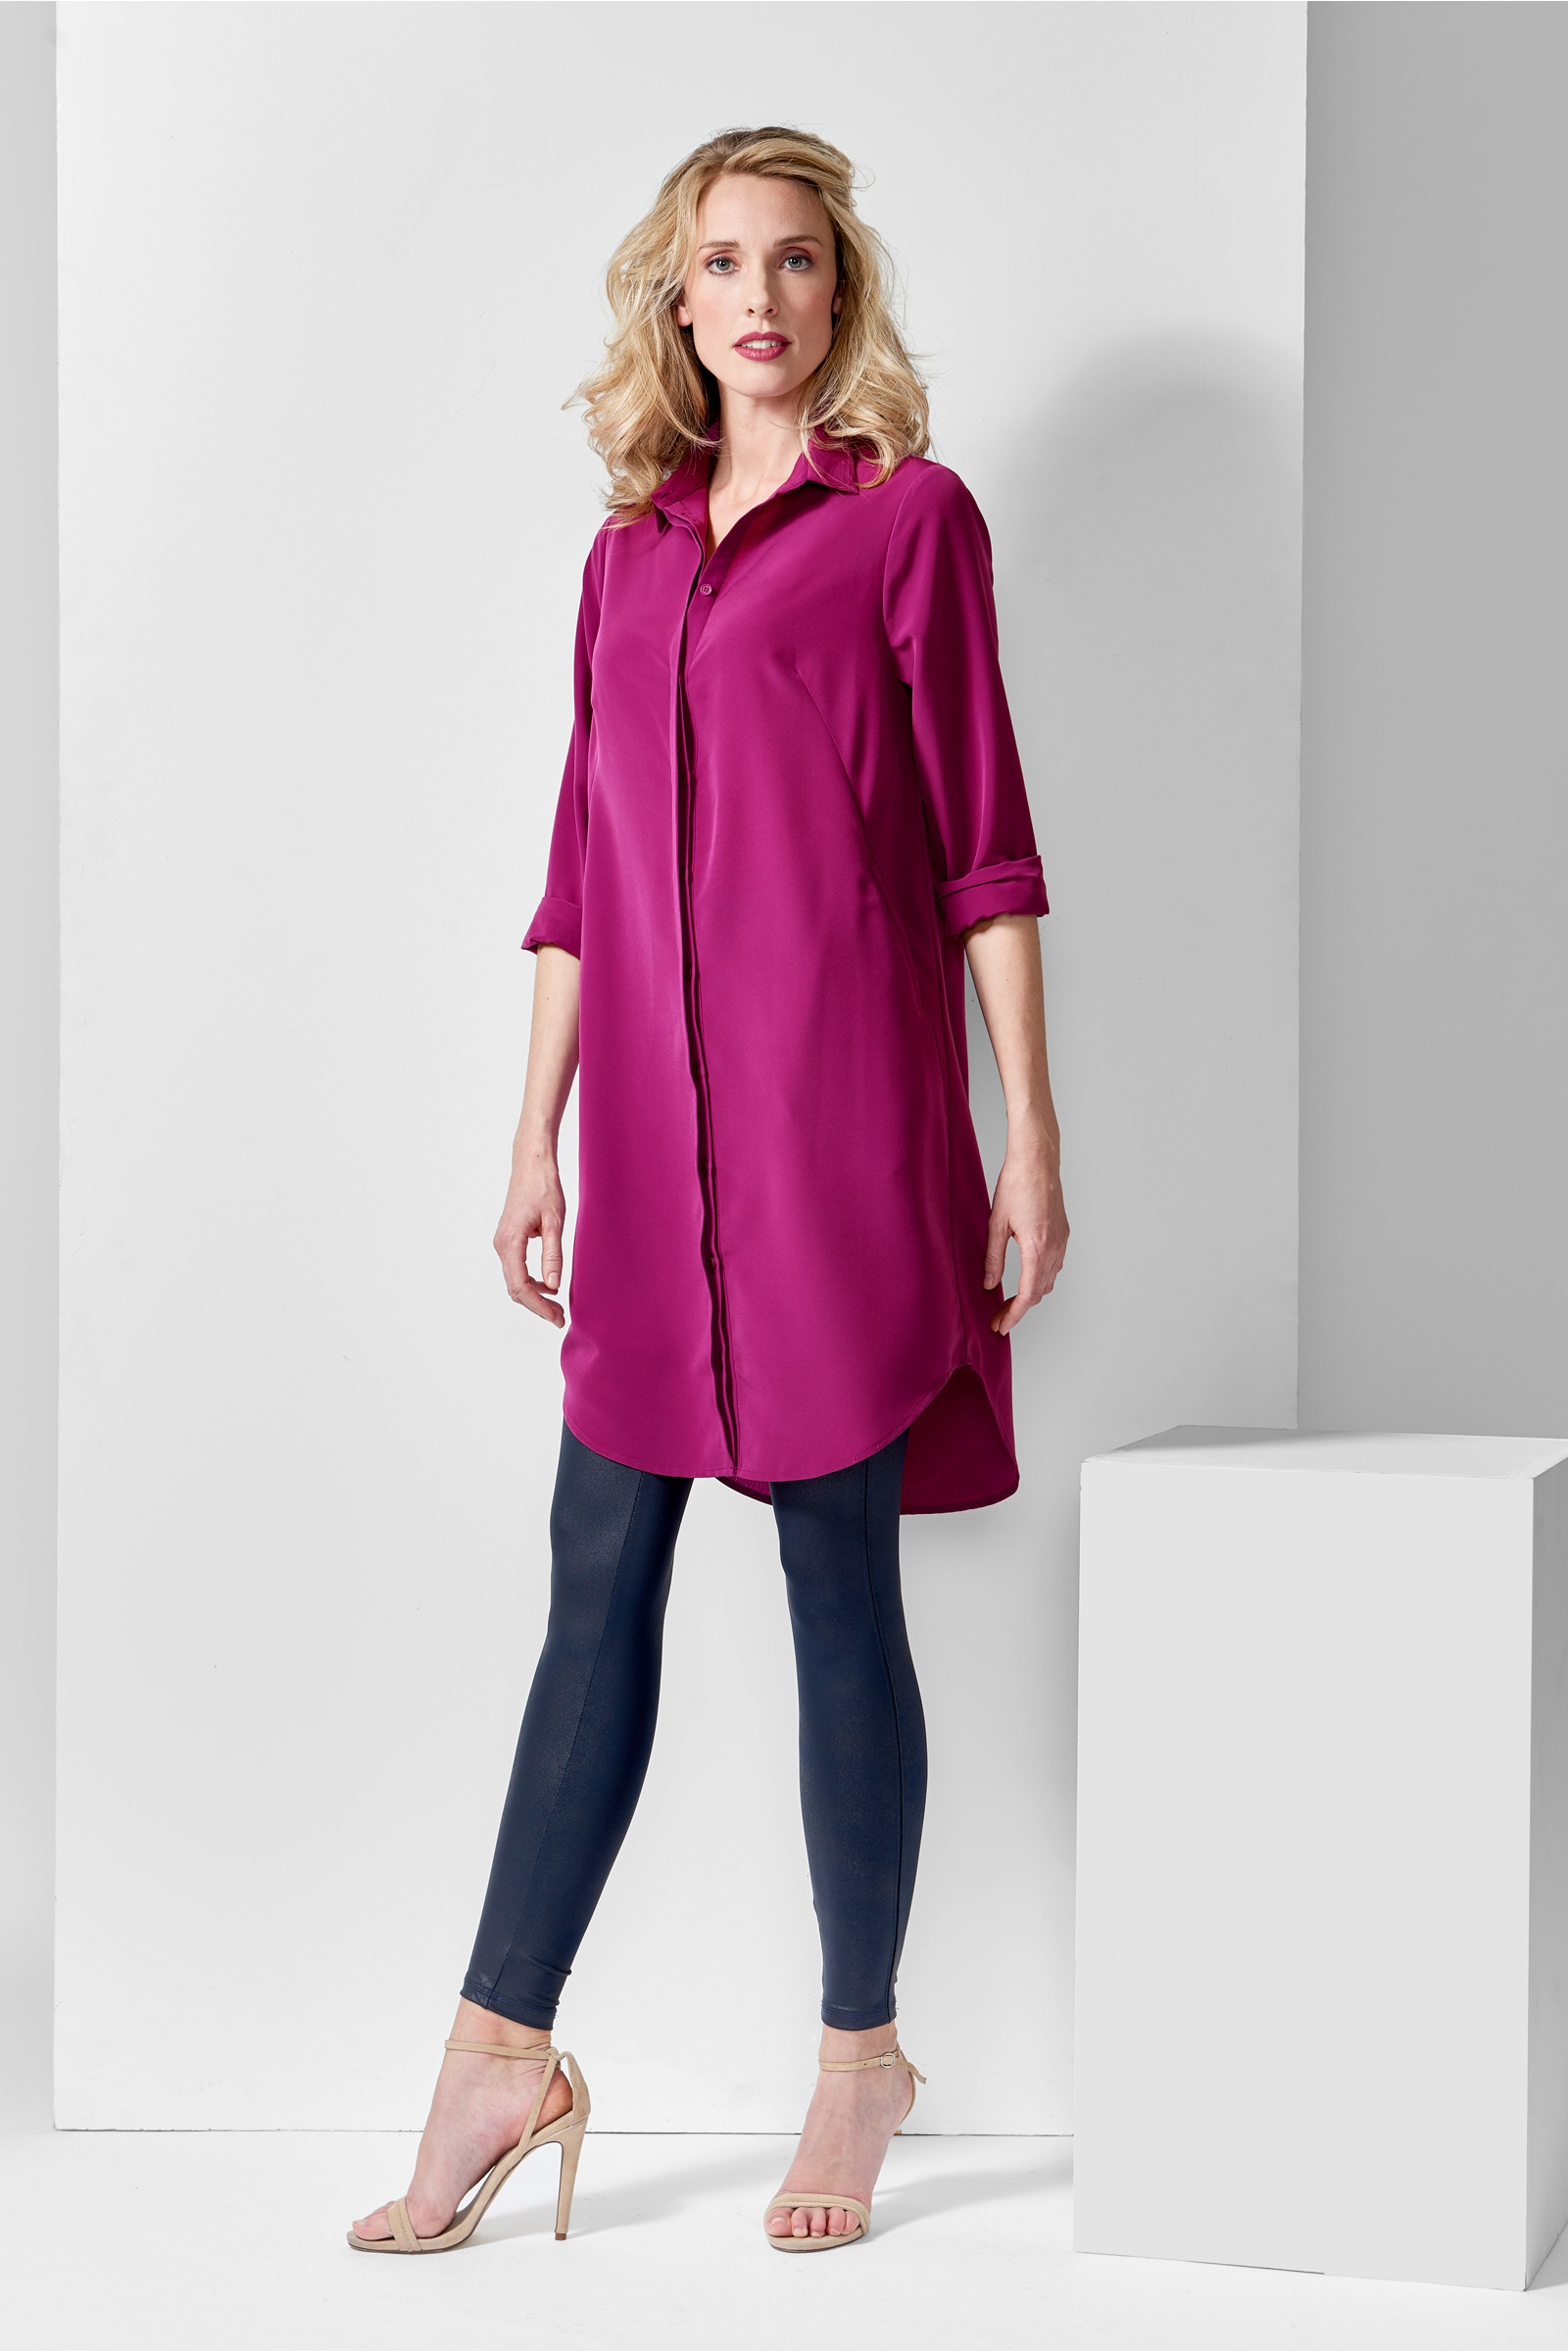 Mart Visser  warren blouse jurk cyclaam